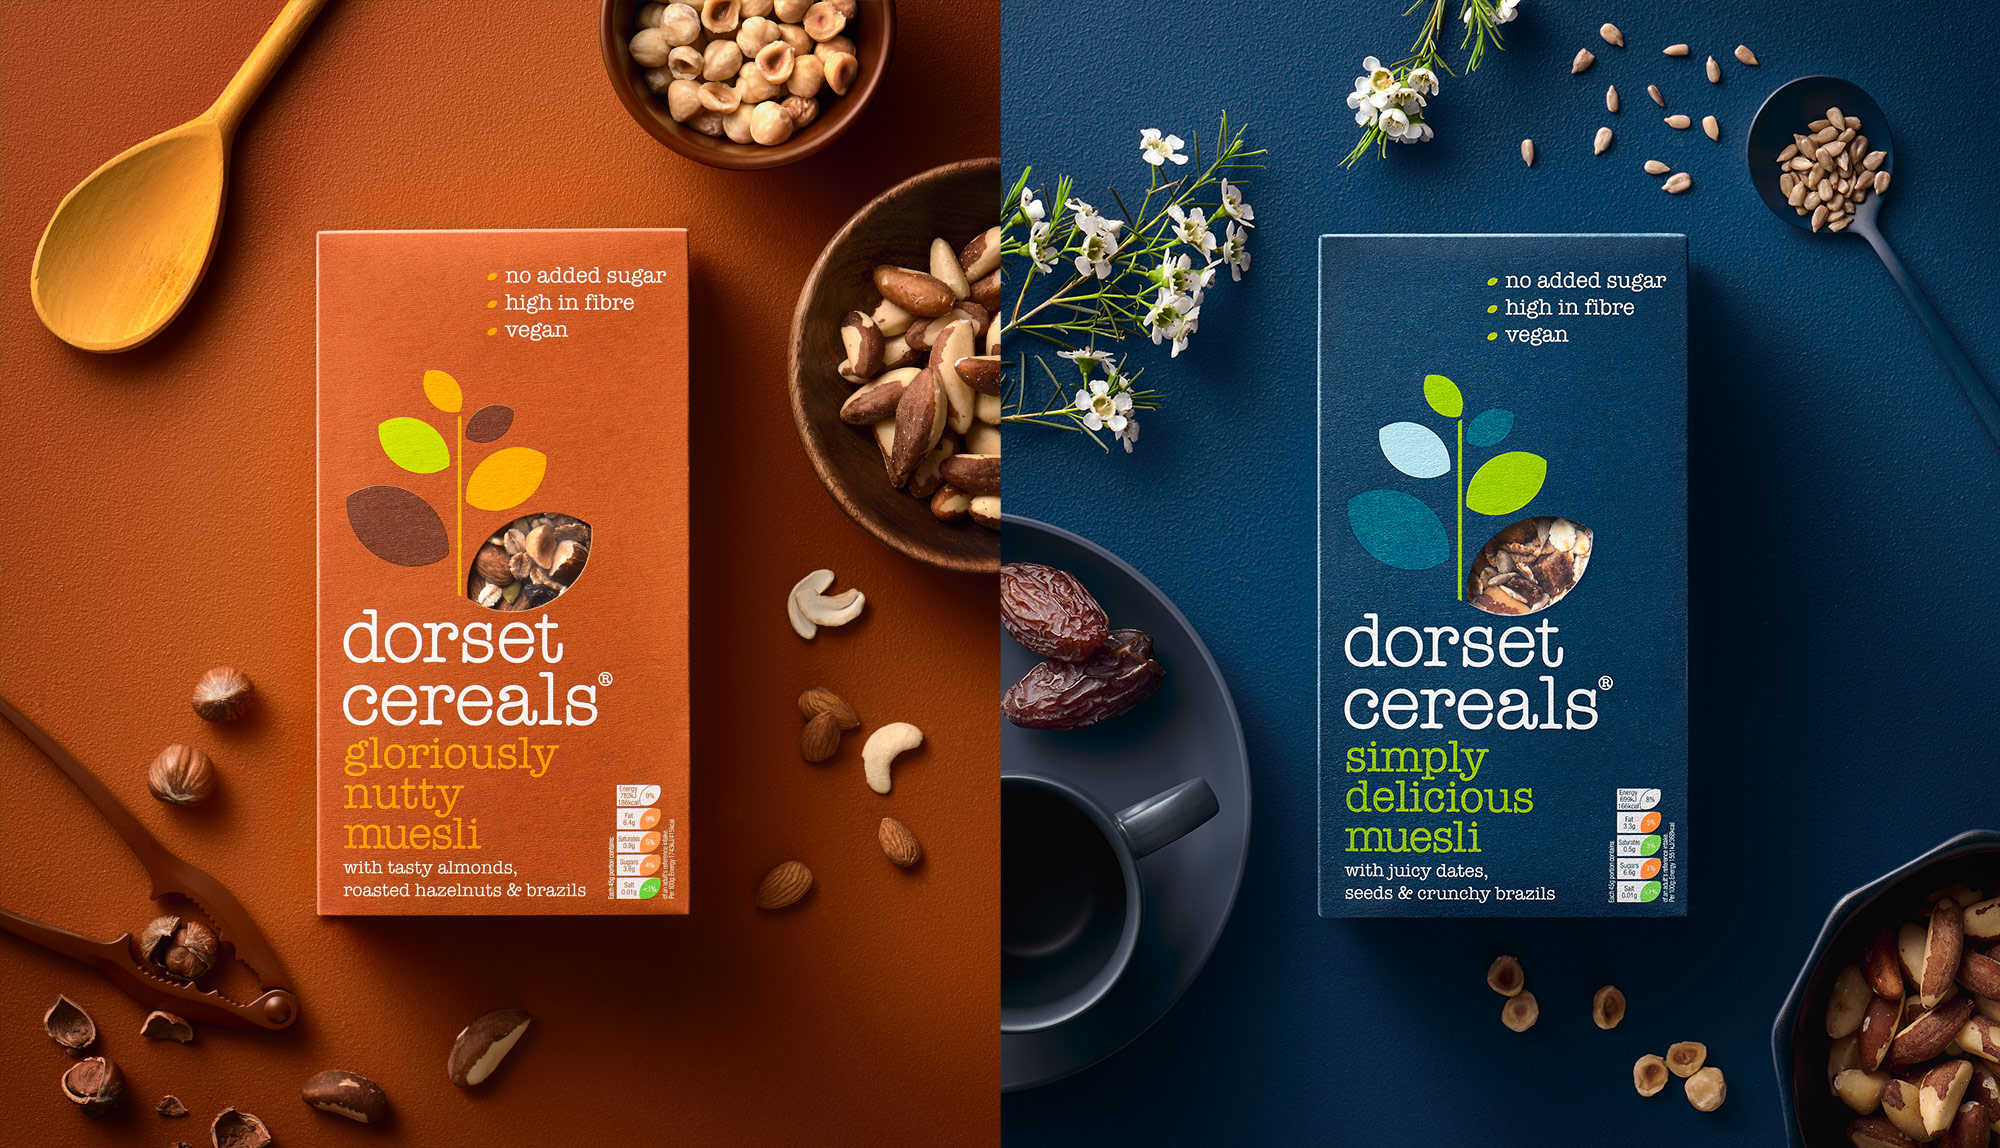 Dorset Cereals gloriously nutty muesli and simply delicious muesli pack photography